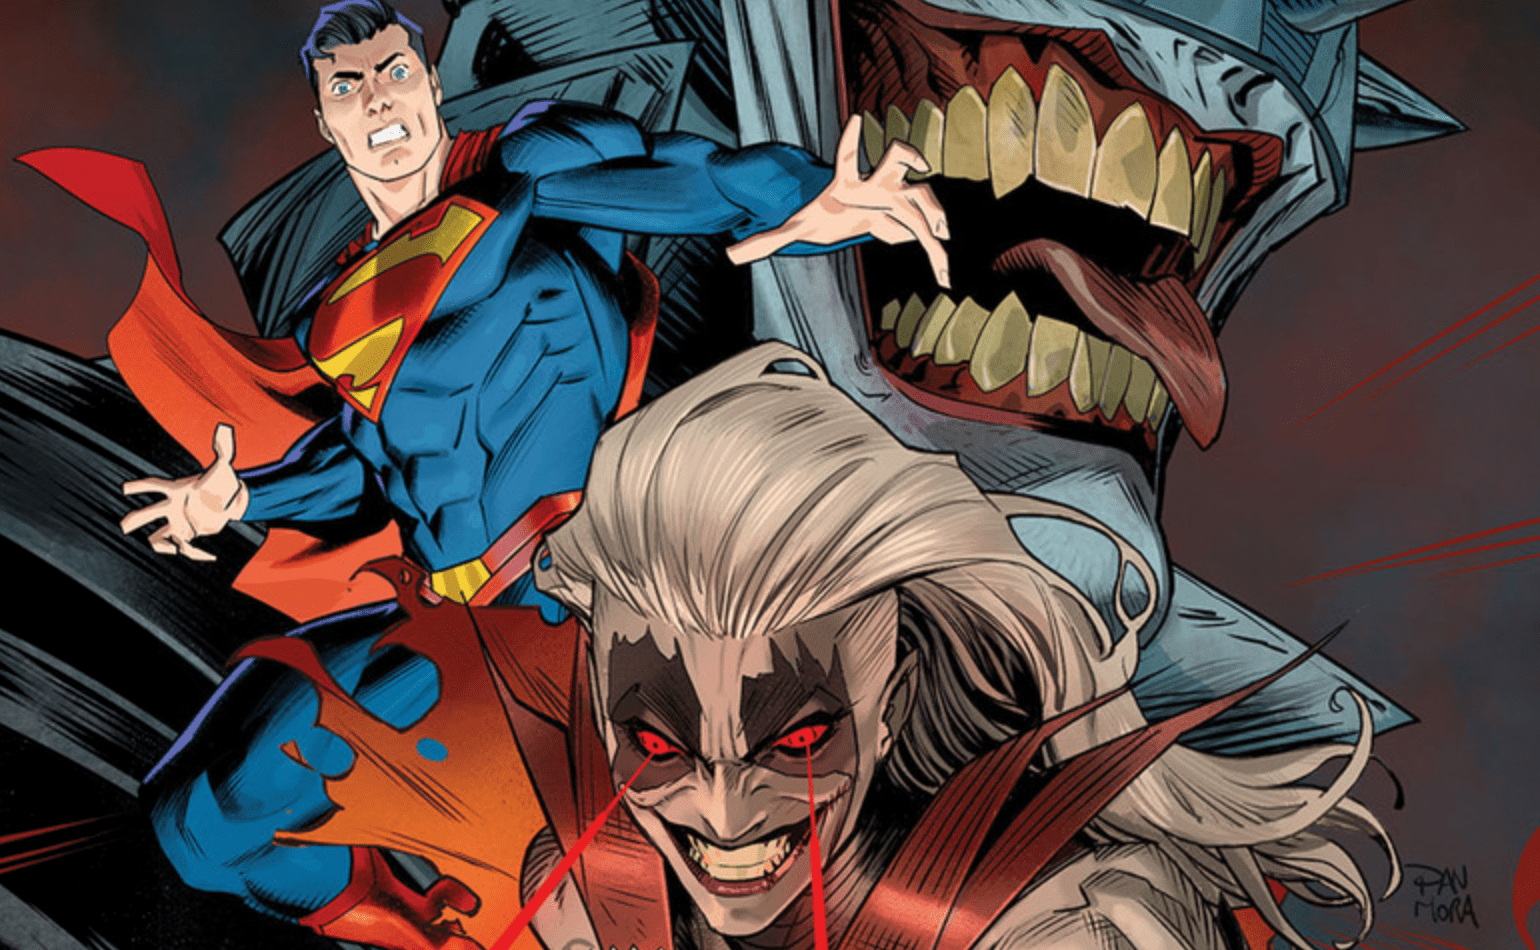 Six 'Infected' hero one-shots and tie-ins coming to DC